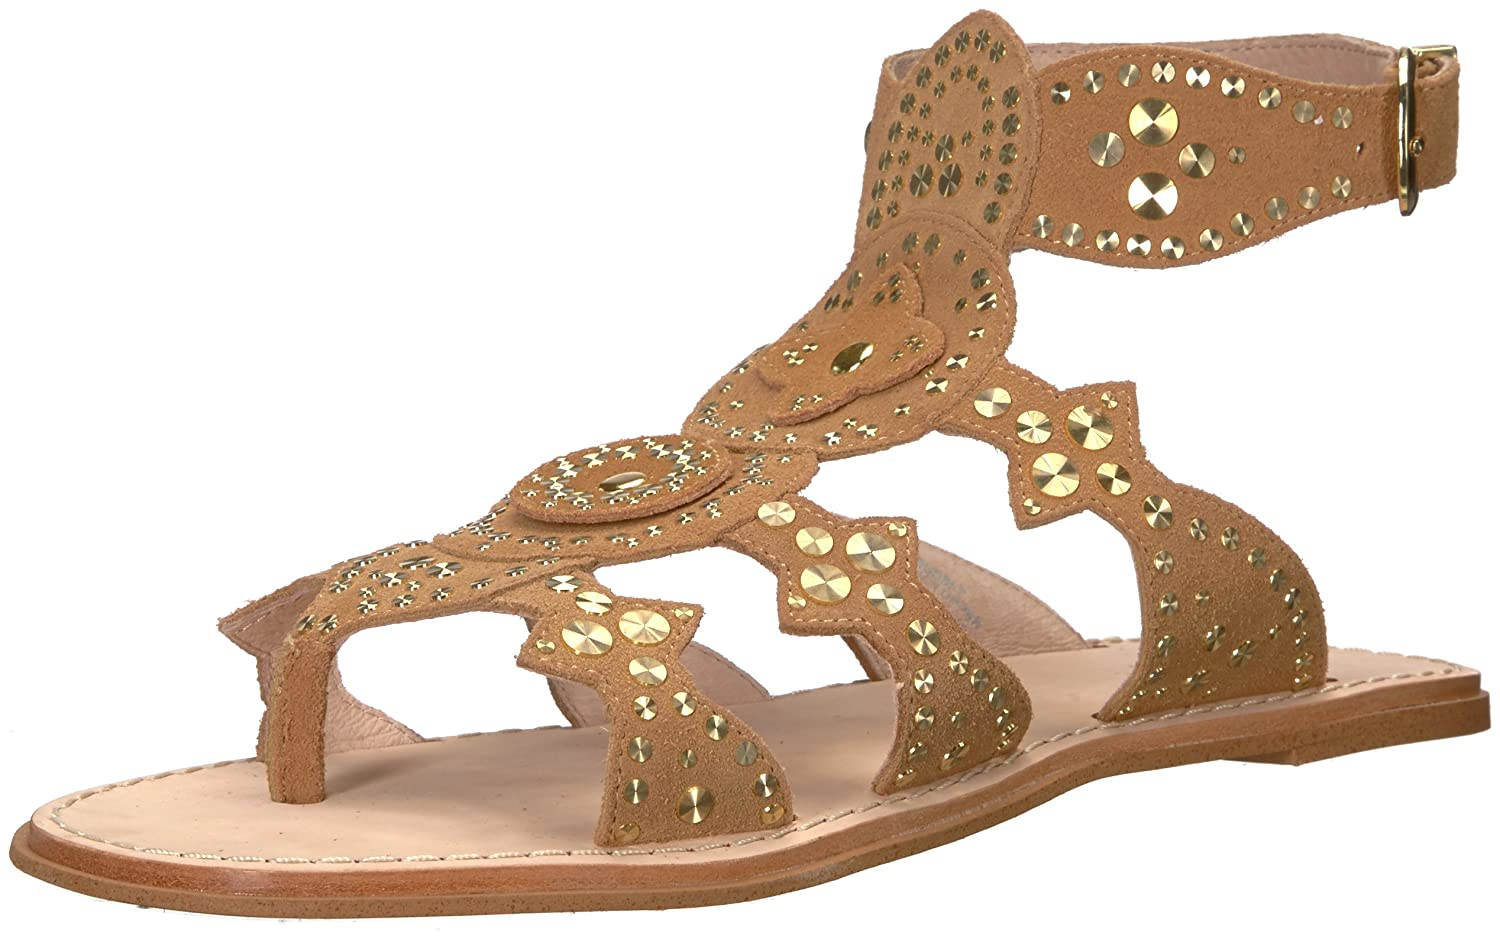 Cecelia New York Women's Bubbly Slide Sandal B078981NKC 6 B(M) US|Sand